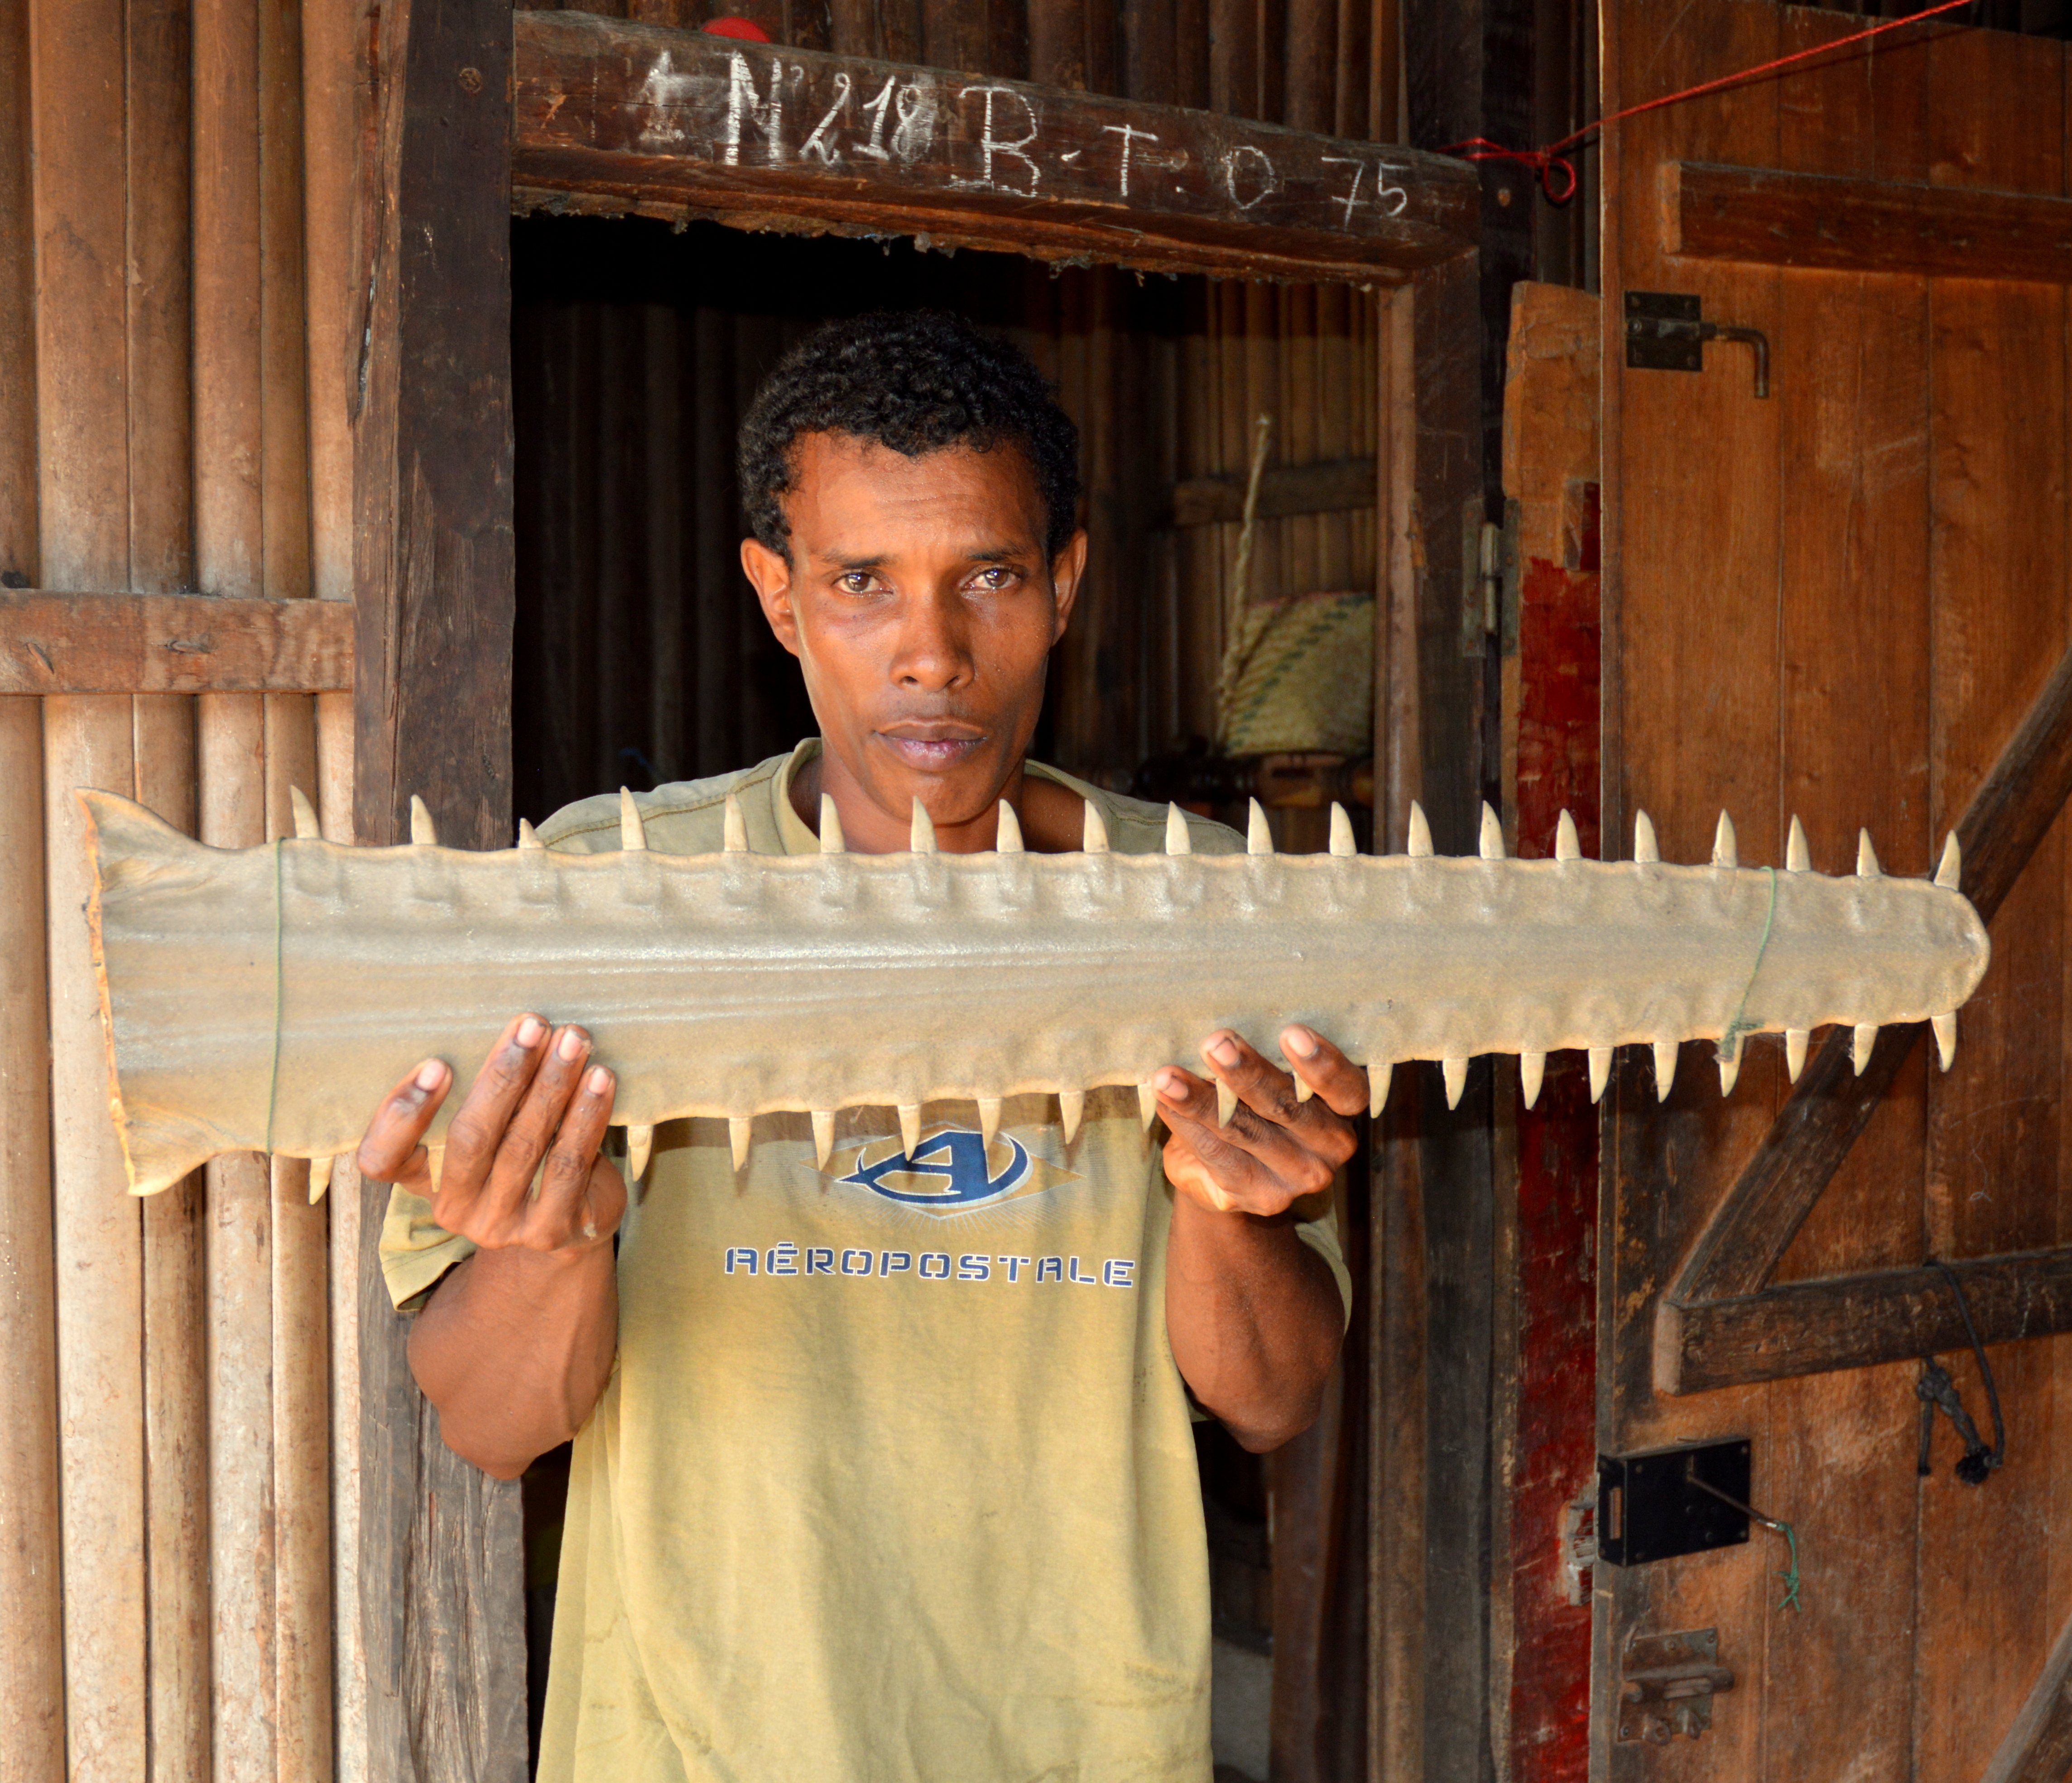 I visited Analalava (which means 'long forest'), at the mouth of Narinda Bay, this week. Several fishermen around Ambanja had told me that they used to catch many sawfish in Narinda Bay. There are many shark fishers there, but they told me that sawfishes are rarely caught any more. This rostrum, in a fisherman's house, came from a largetooth sawfish caught around 10 years ago, in Ramanetaka Bay.